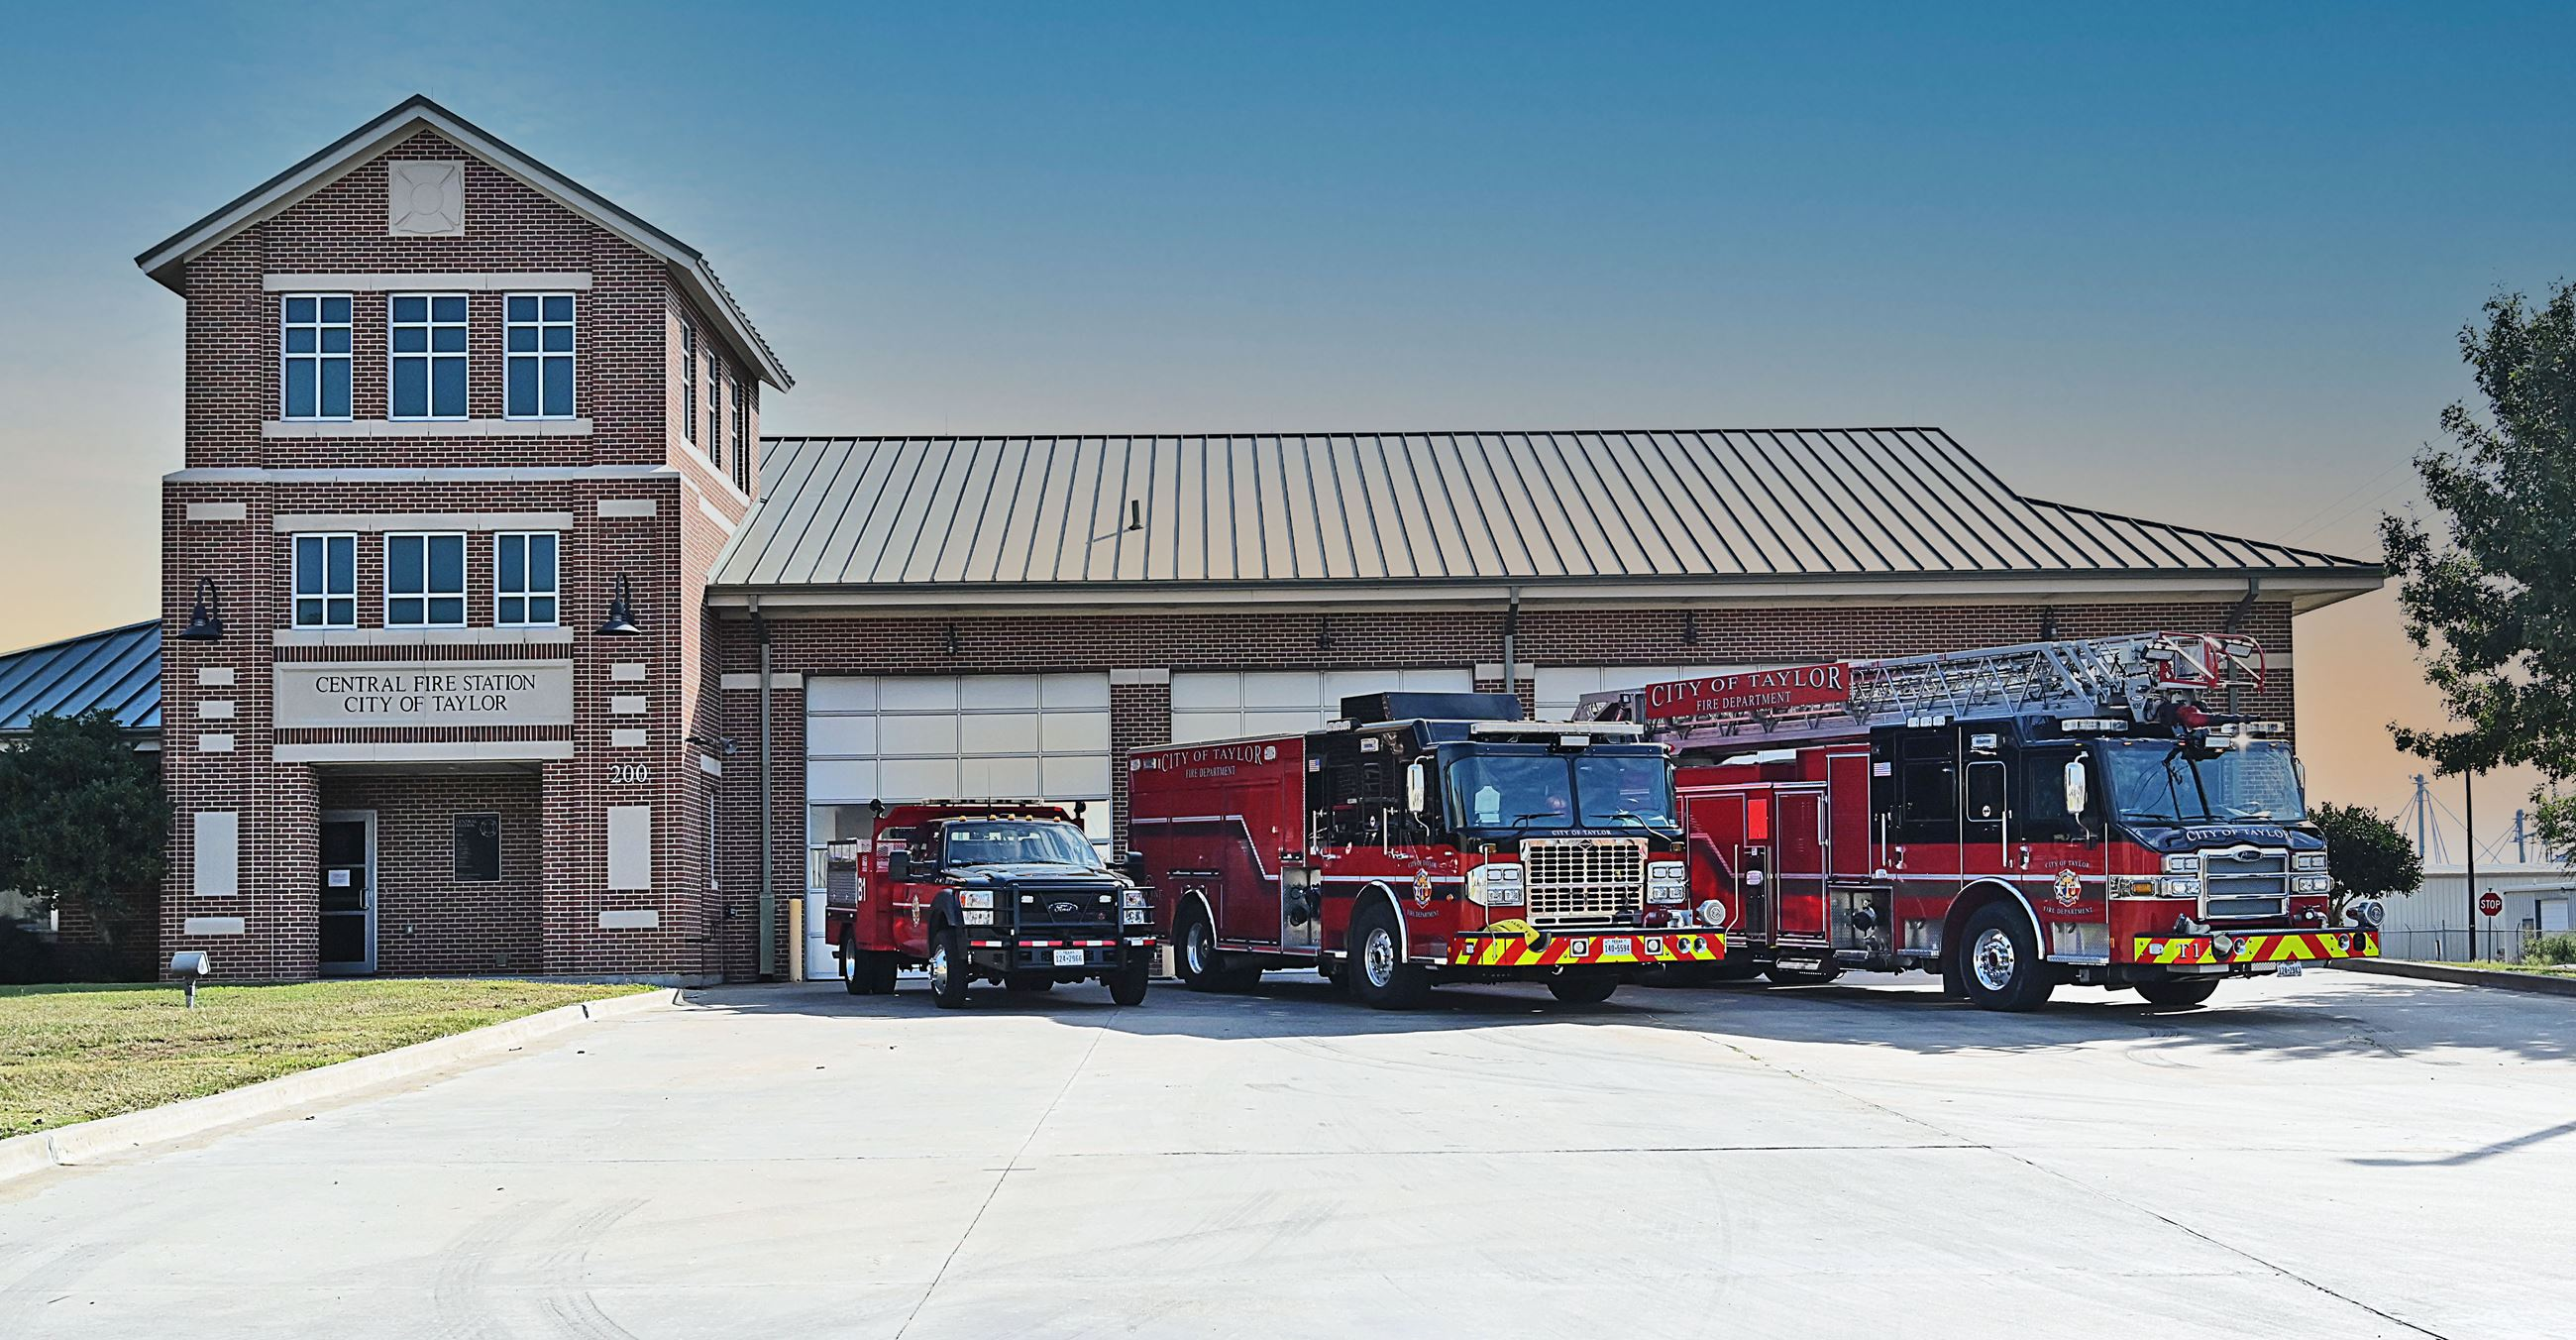 Taylor Fire Department Station 1 with fire trucks lined up